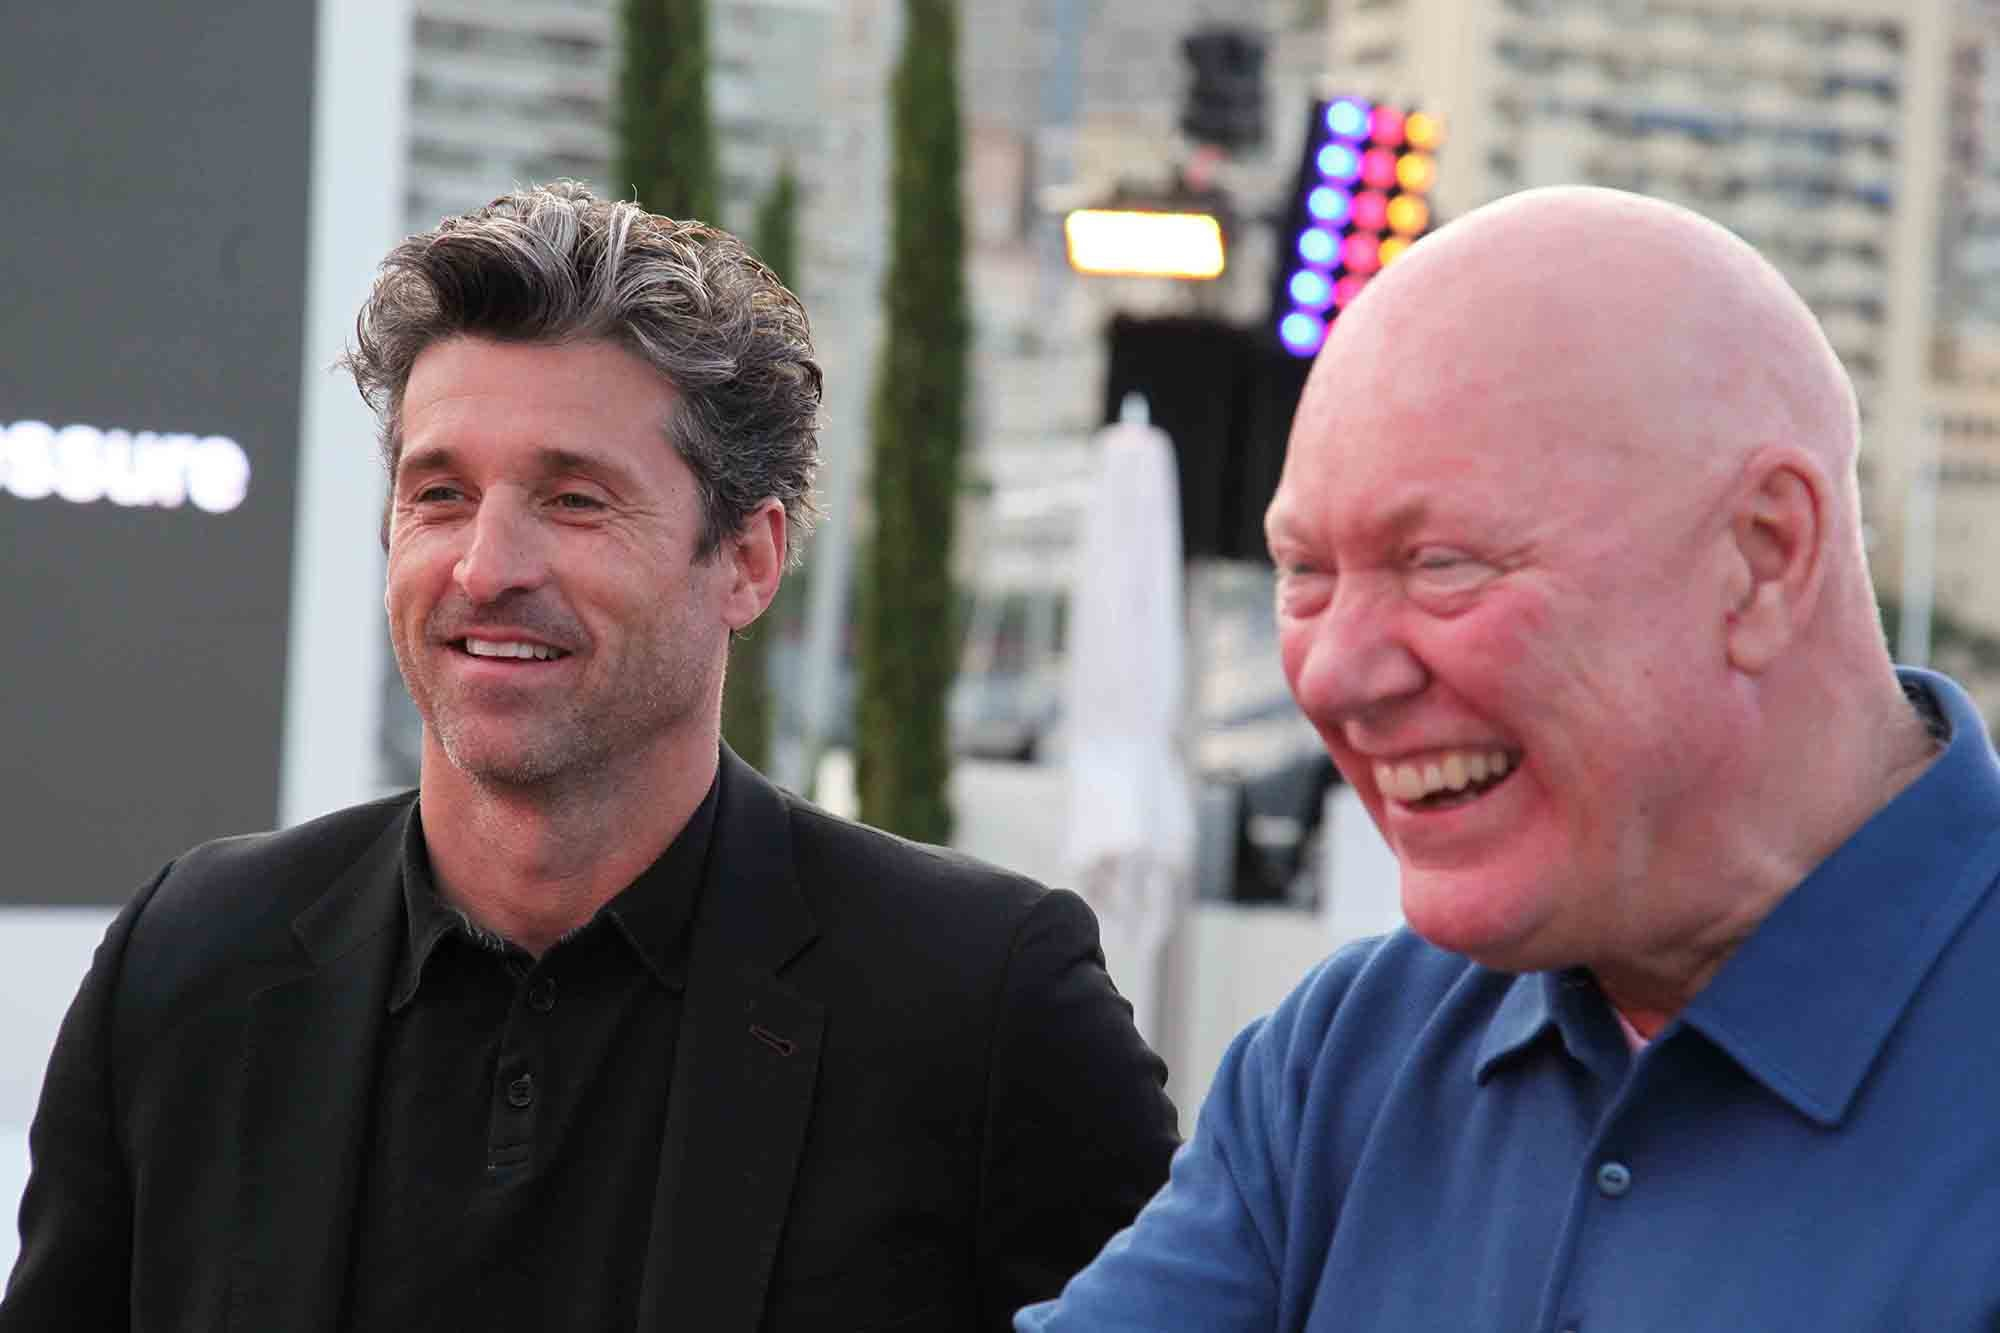 Photo Report: Behind The Scenes At The Monaco Grand Prix 2016 With TAG Heuer CEO Jean-Claude Biver Photo Report: Behind The Scenes At The Monaco Grand Prix 2016 With TAG Heuer CEO Jean-Claude Biver r3